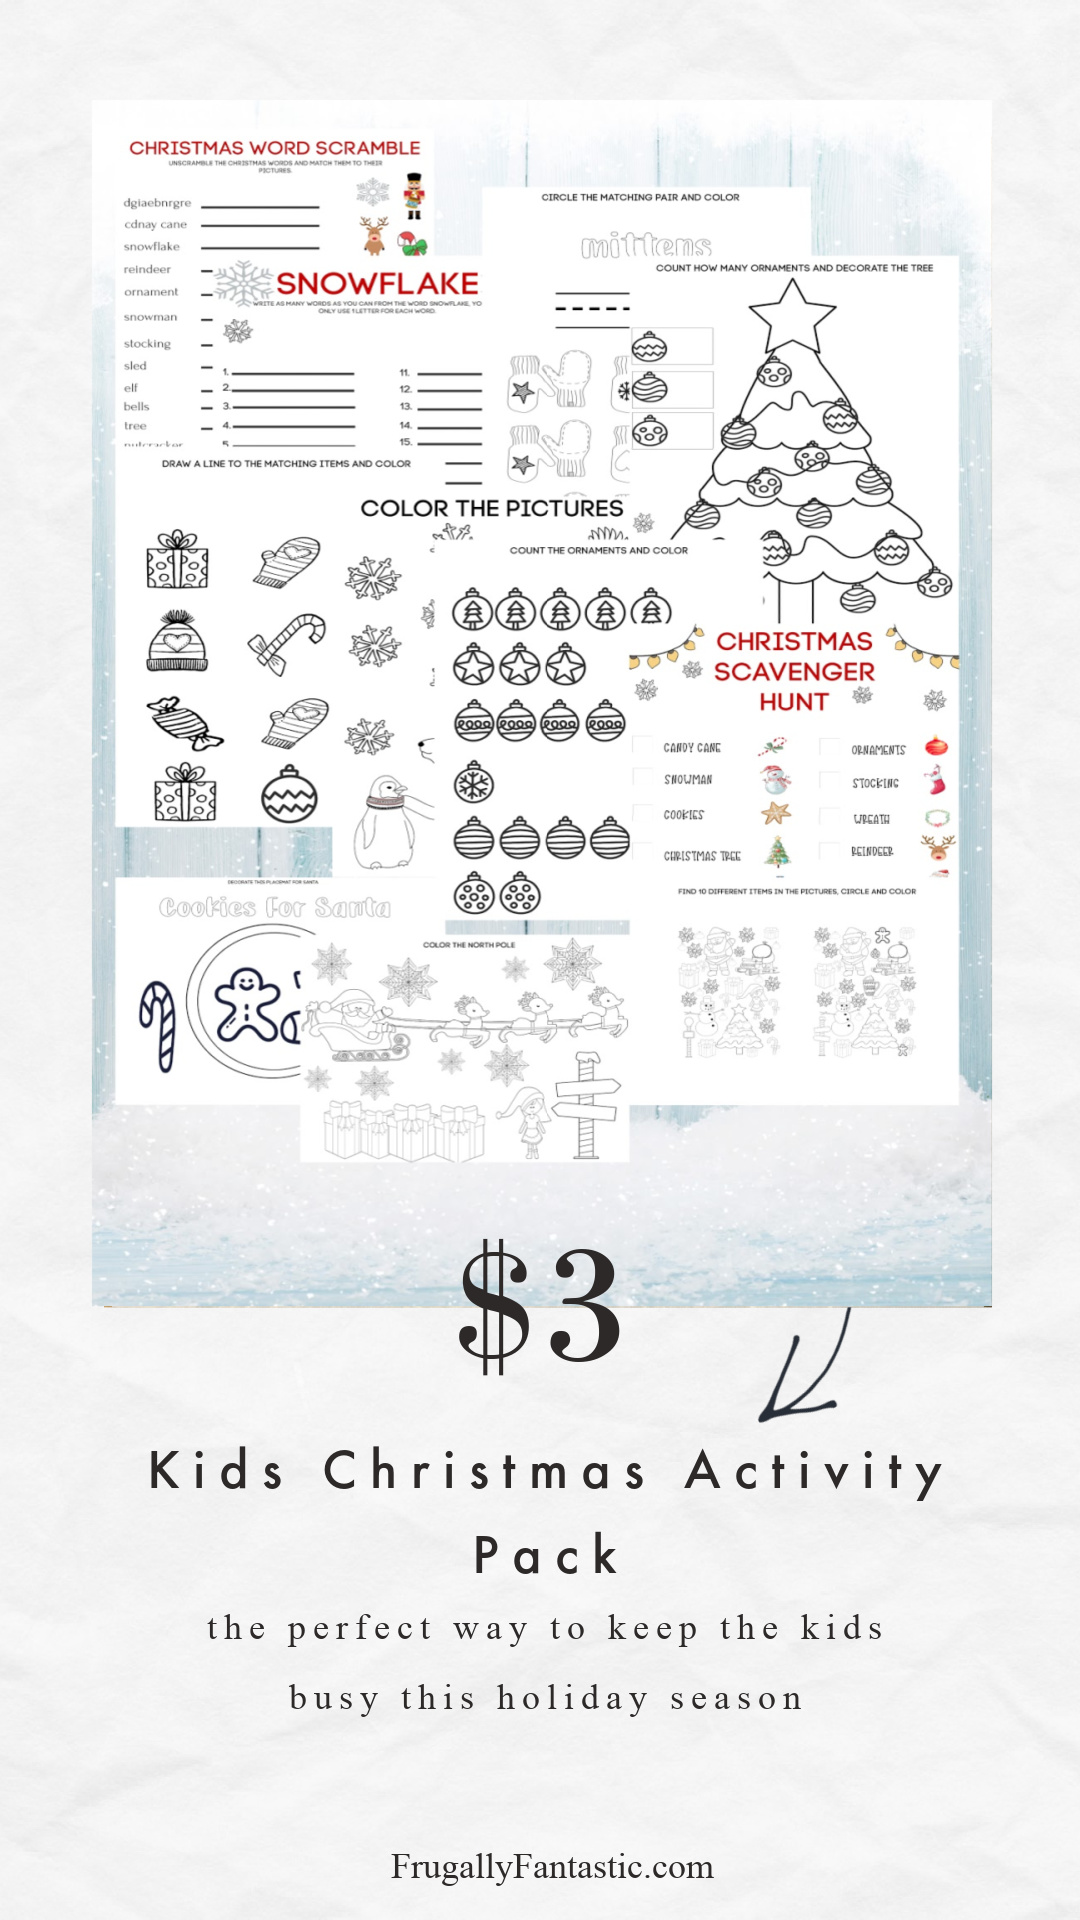 Kids Christmas Activity Pack FrugallyFantastic.com20